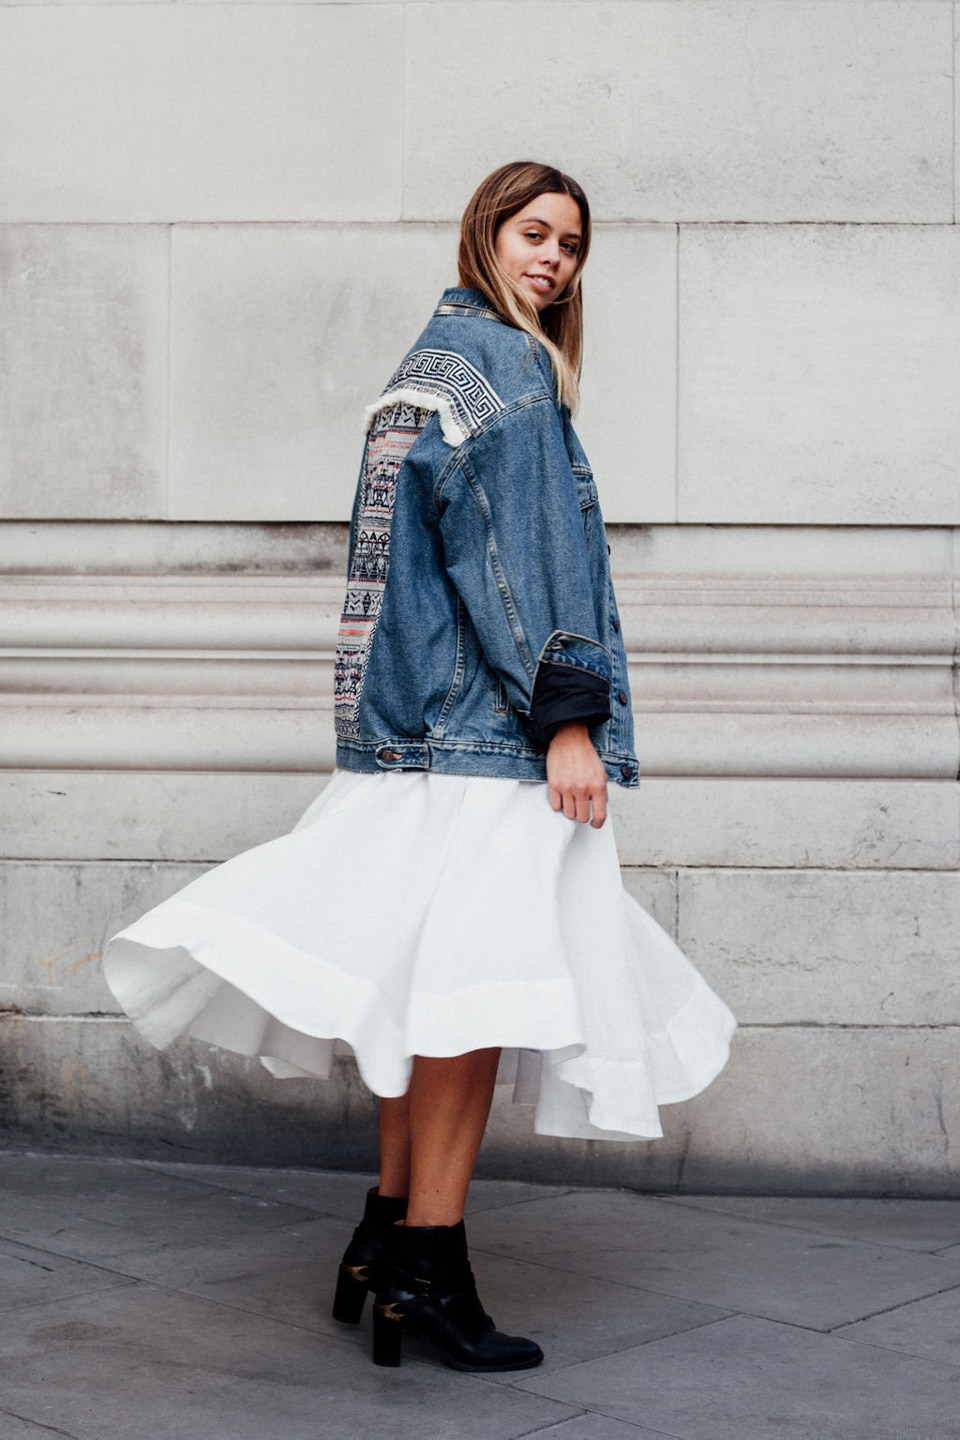 Jil wears white dress with oversized denim jacket